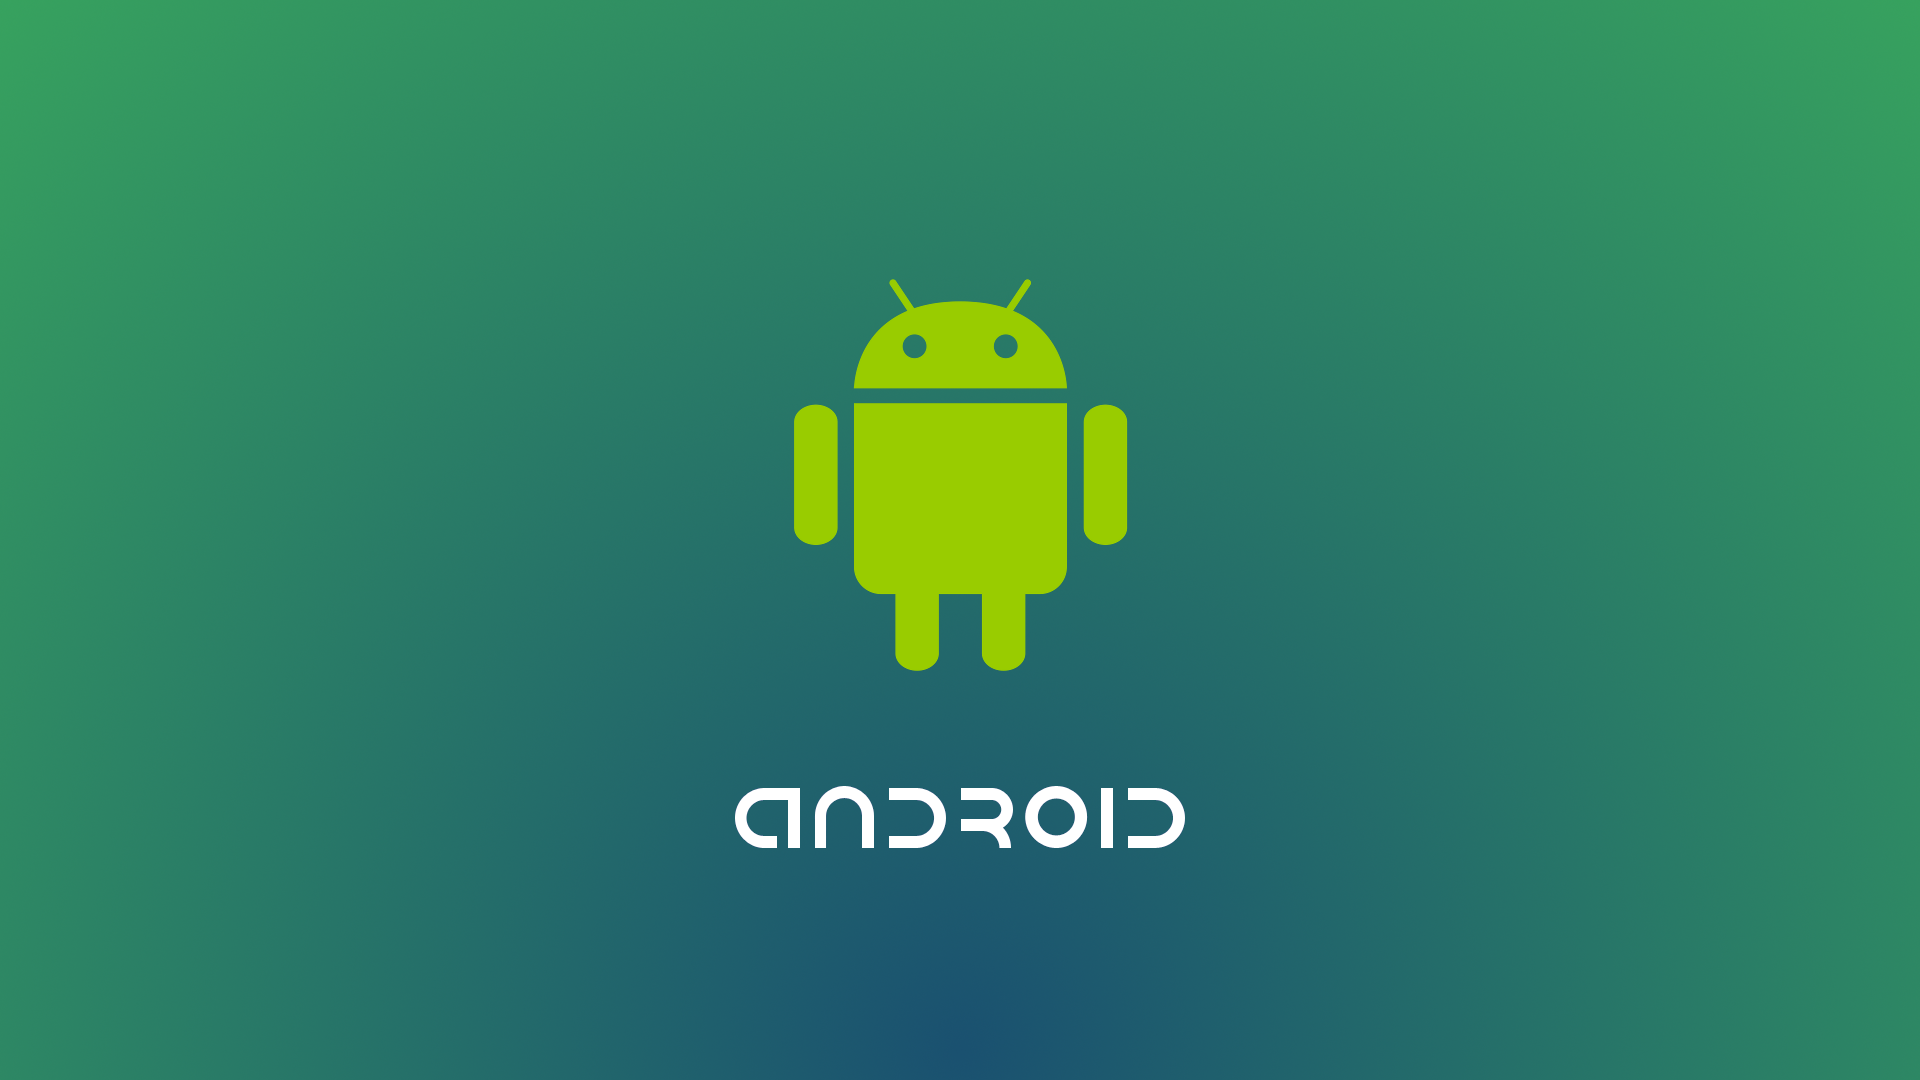 WWW Android Wallpaper